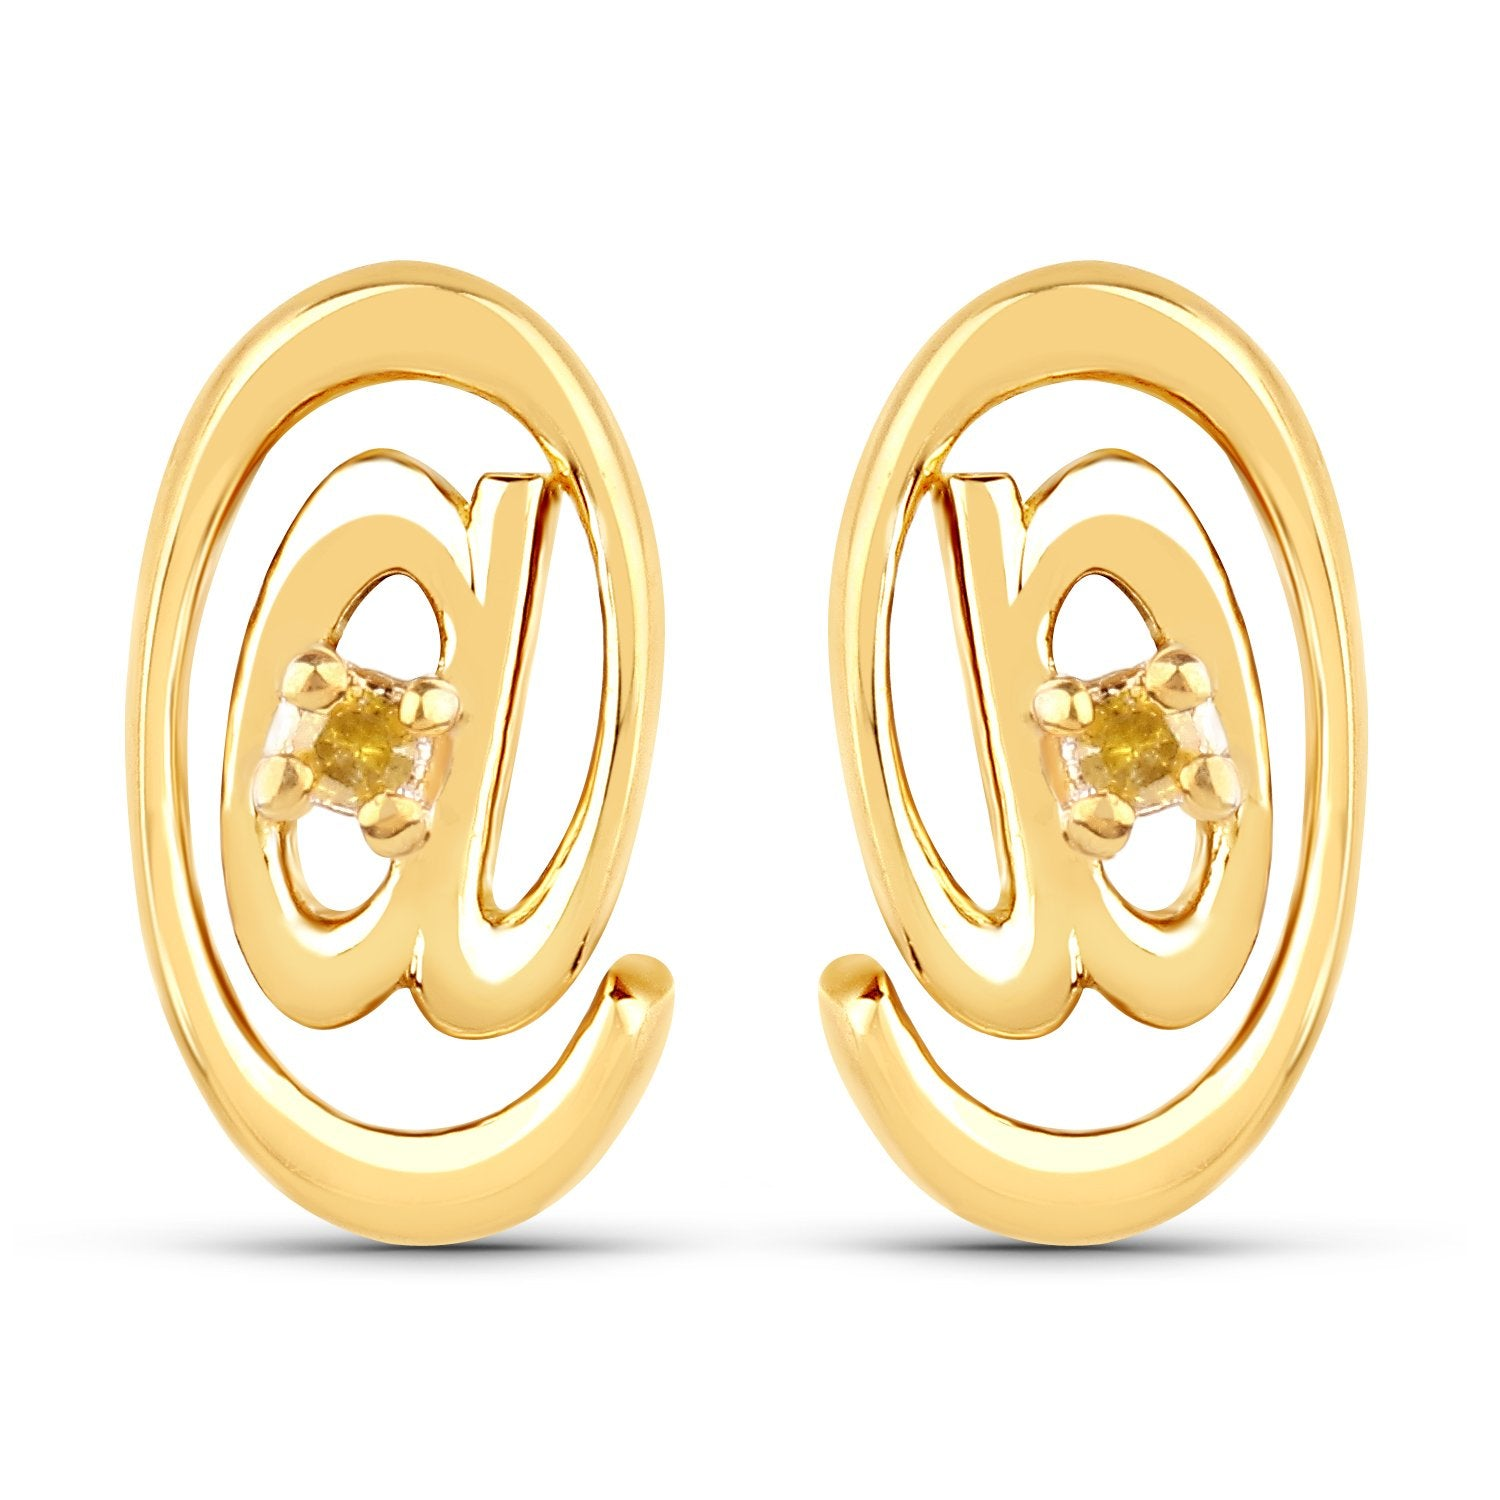 LoveHuang 0.01 Carats Genuine Yellow Diamond (I-J, I2-I3) At Me Stud Earrings Solid .925 Sterling Silver With 18KT Yellow Gold Plating